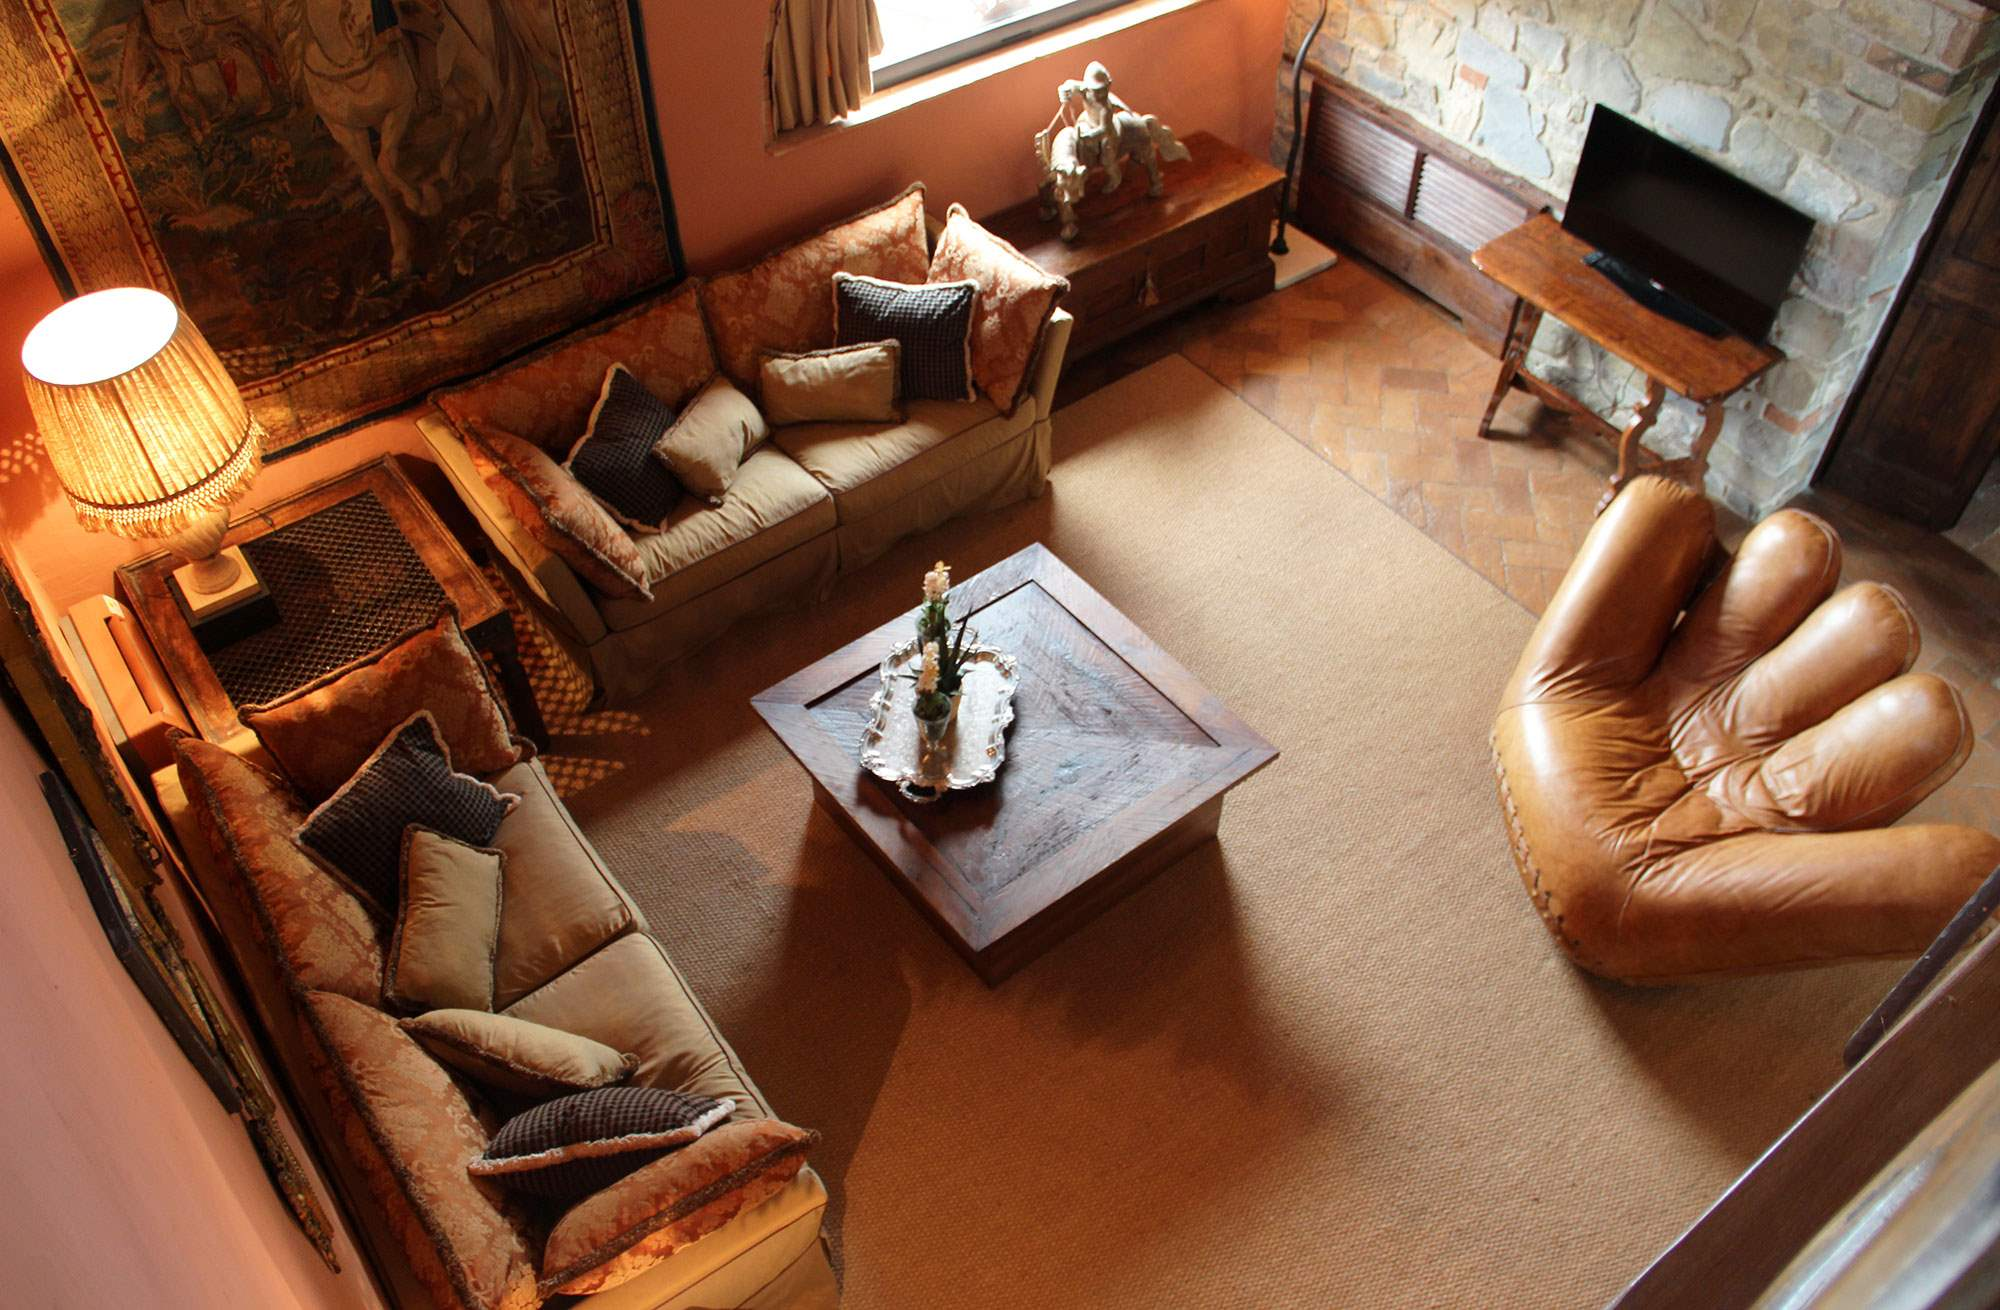 Villa Tuscan, 6 (+2), 3 bedroom villa in Chianti & Countryside, Tuscany Photo #8